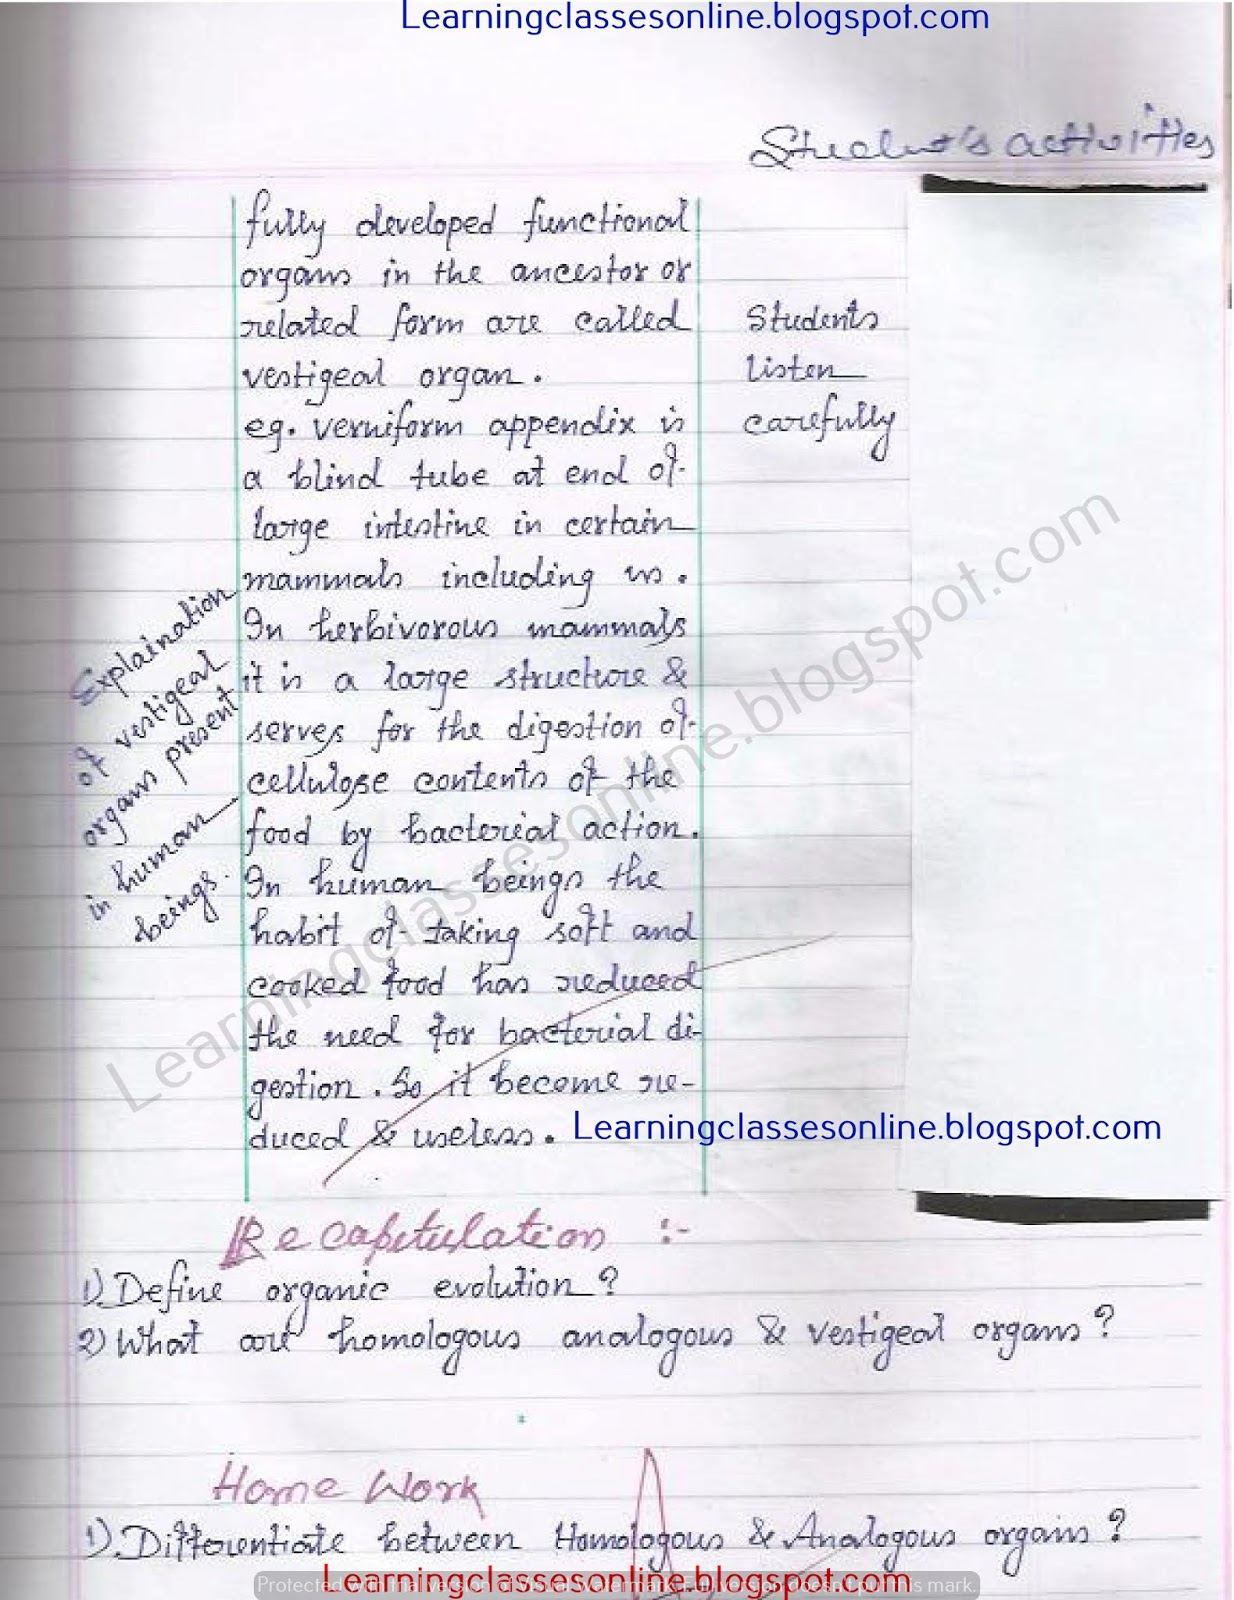 biology lesson plans for high school teachers, sample detailed lesson plan in biology, sample lesson plan in biology, example of detailed lesson plan in biological science, sample biology lesson plans high school, 9th grade biology lesson plans, example of lesson plan in biology, introduction to biology lesson plan, lesson plan for biology class 10, model lesson plan for biology,